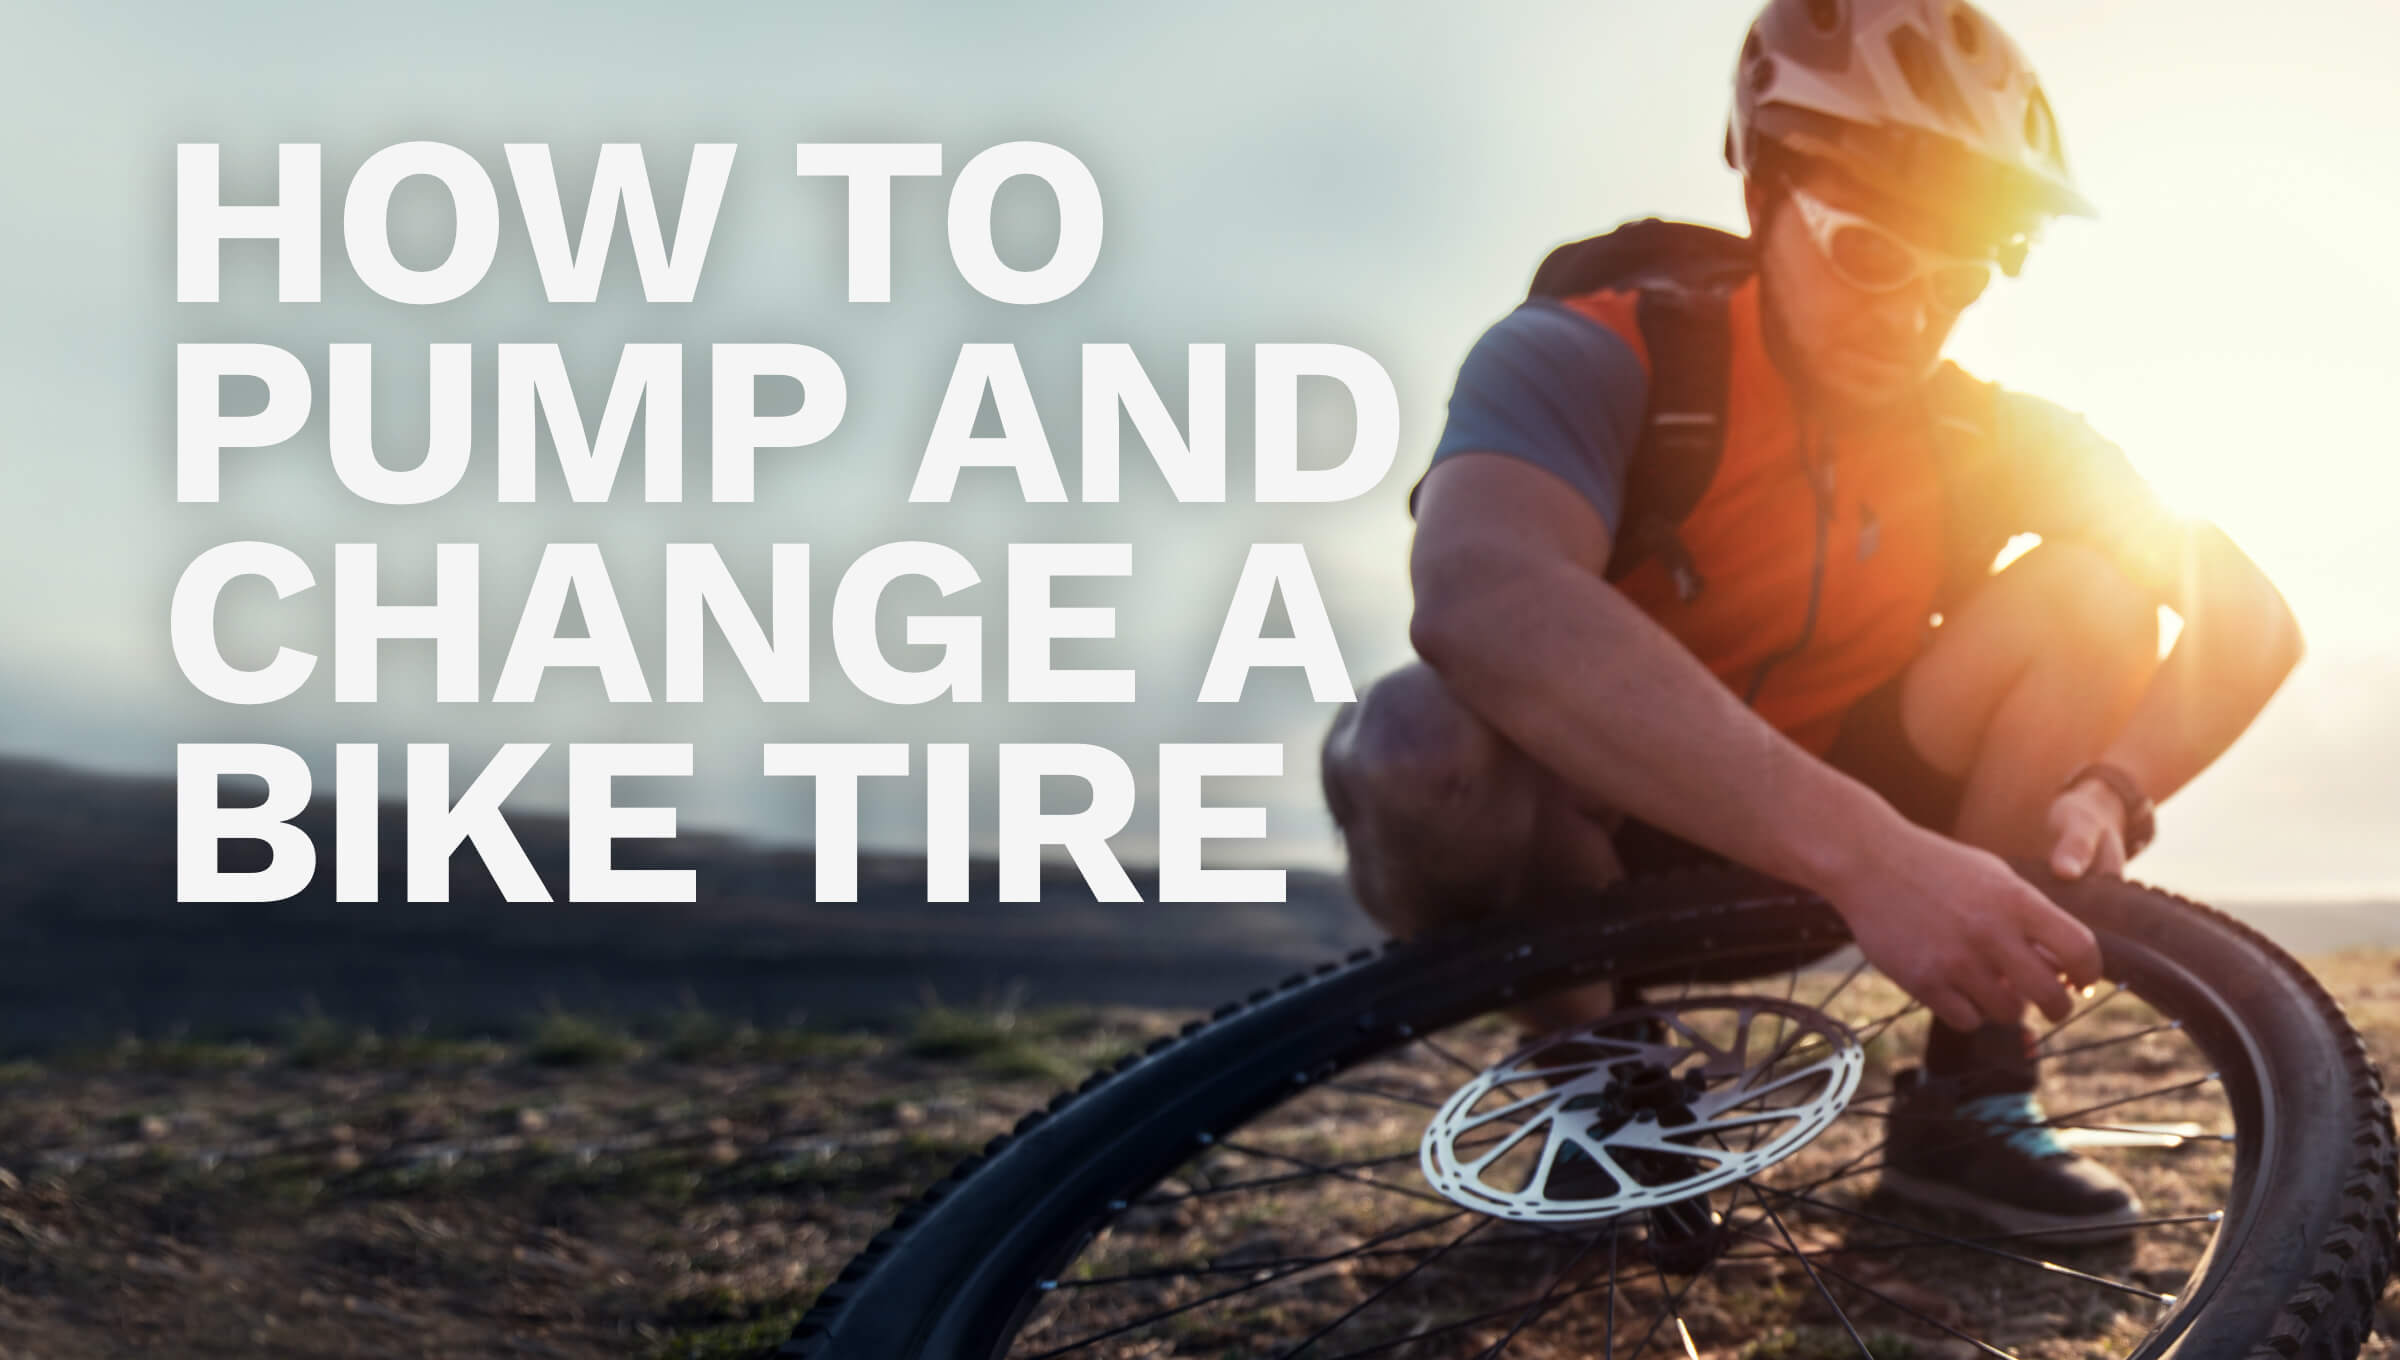 How to Pump and Change a Bike Tire